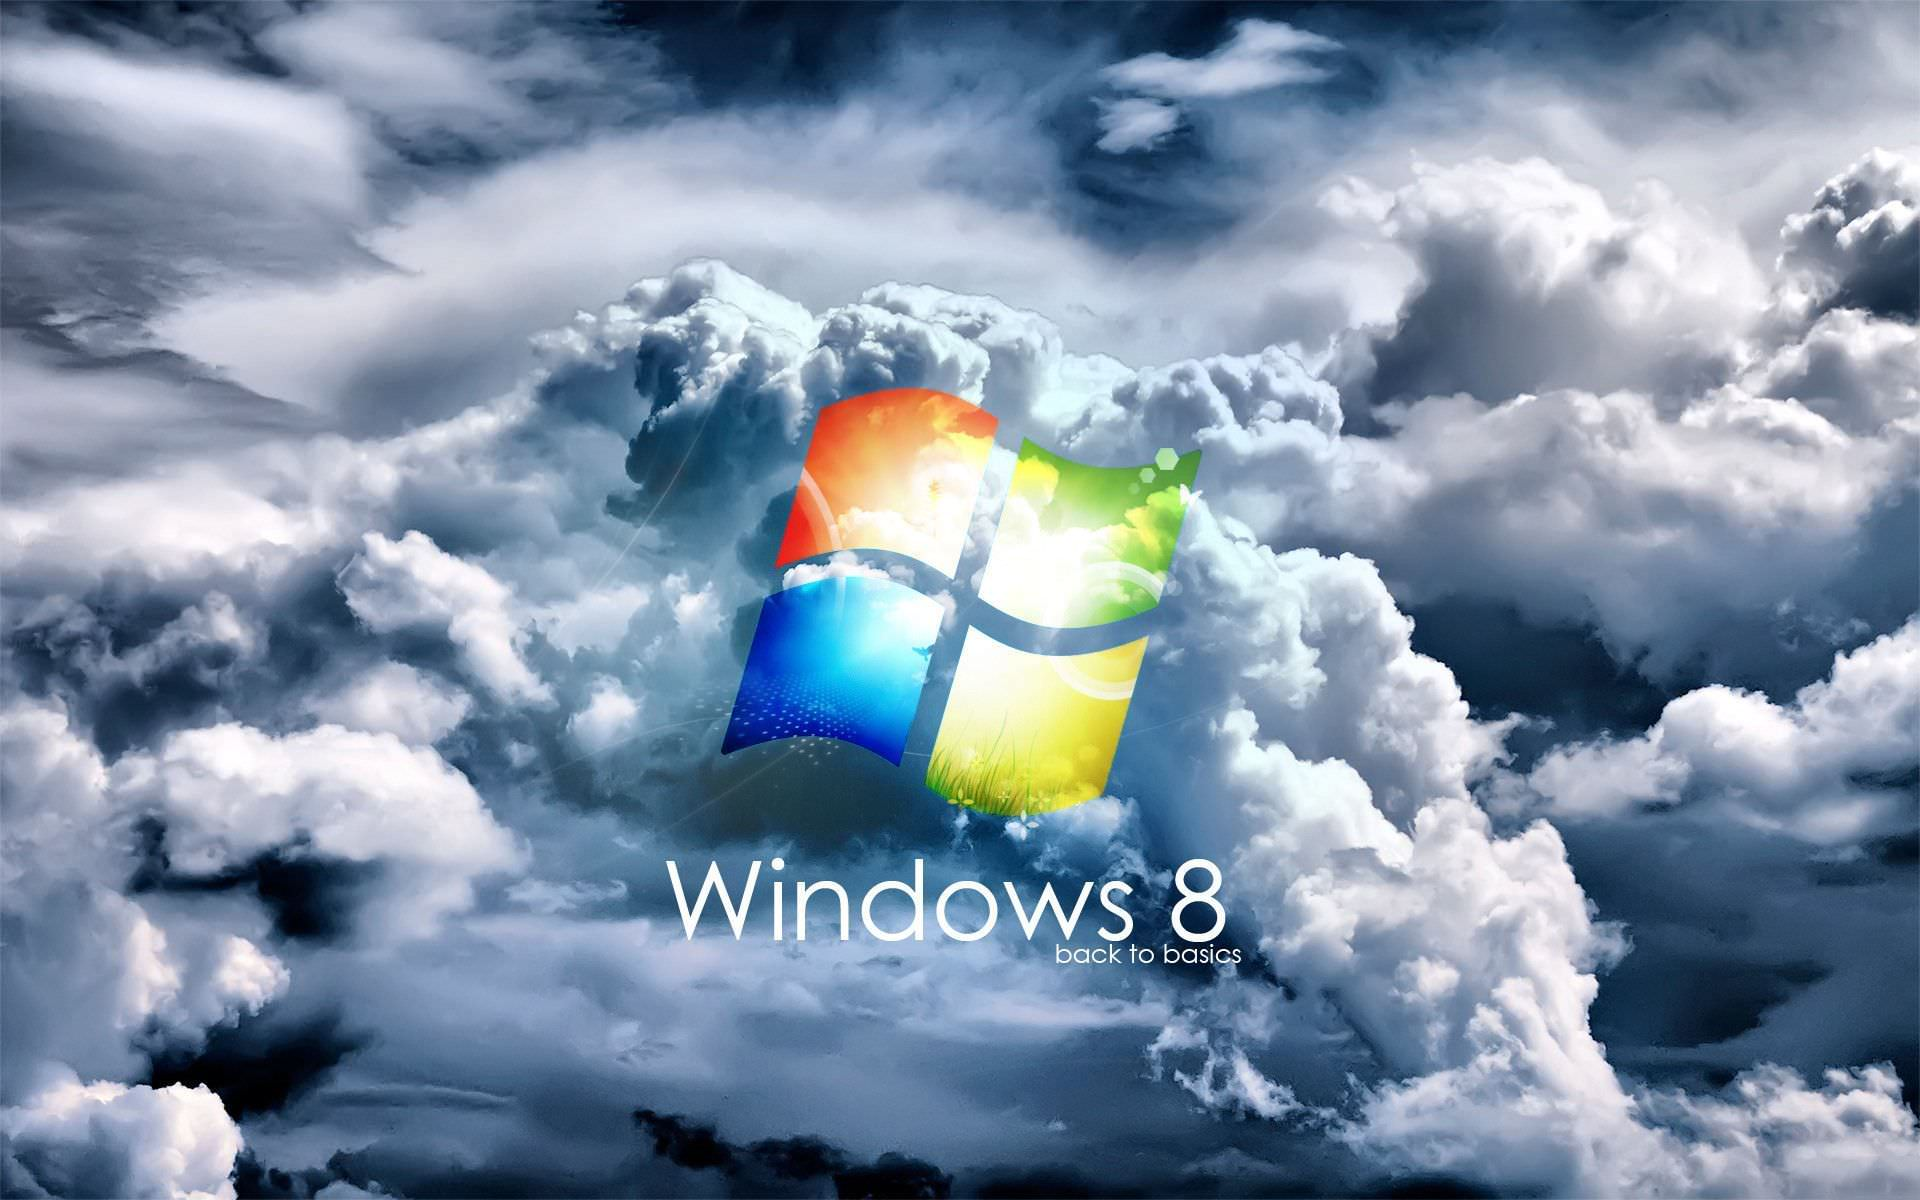 Coll Windows 8 Download Wallpaper